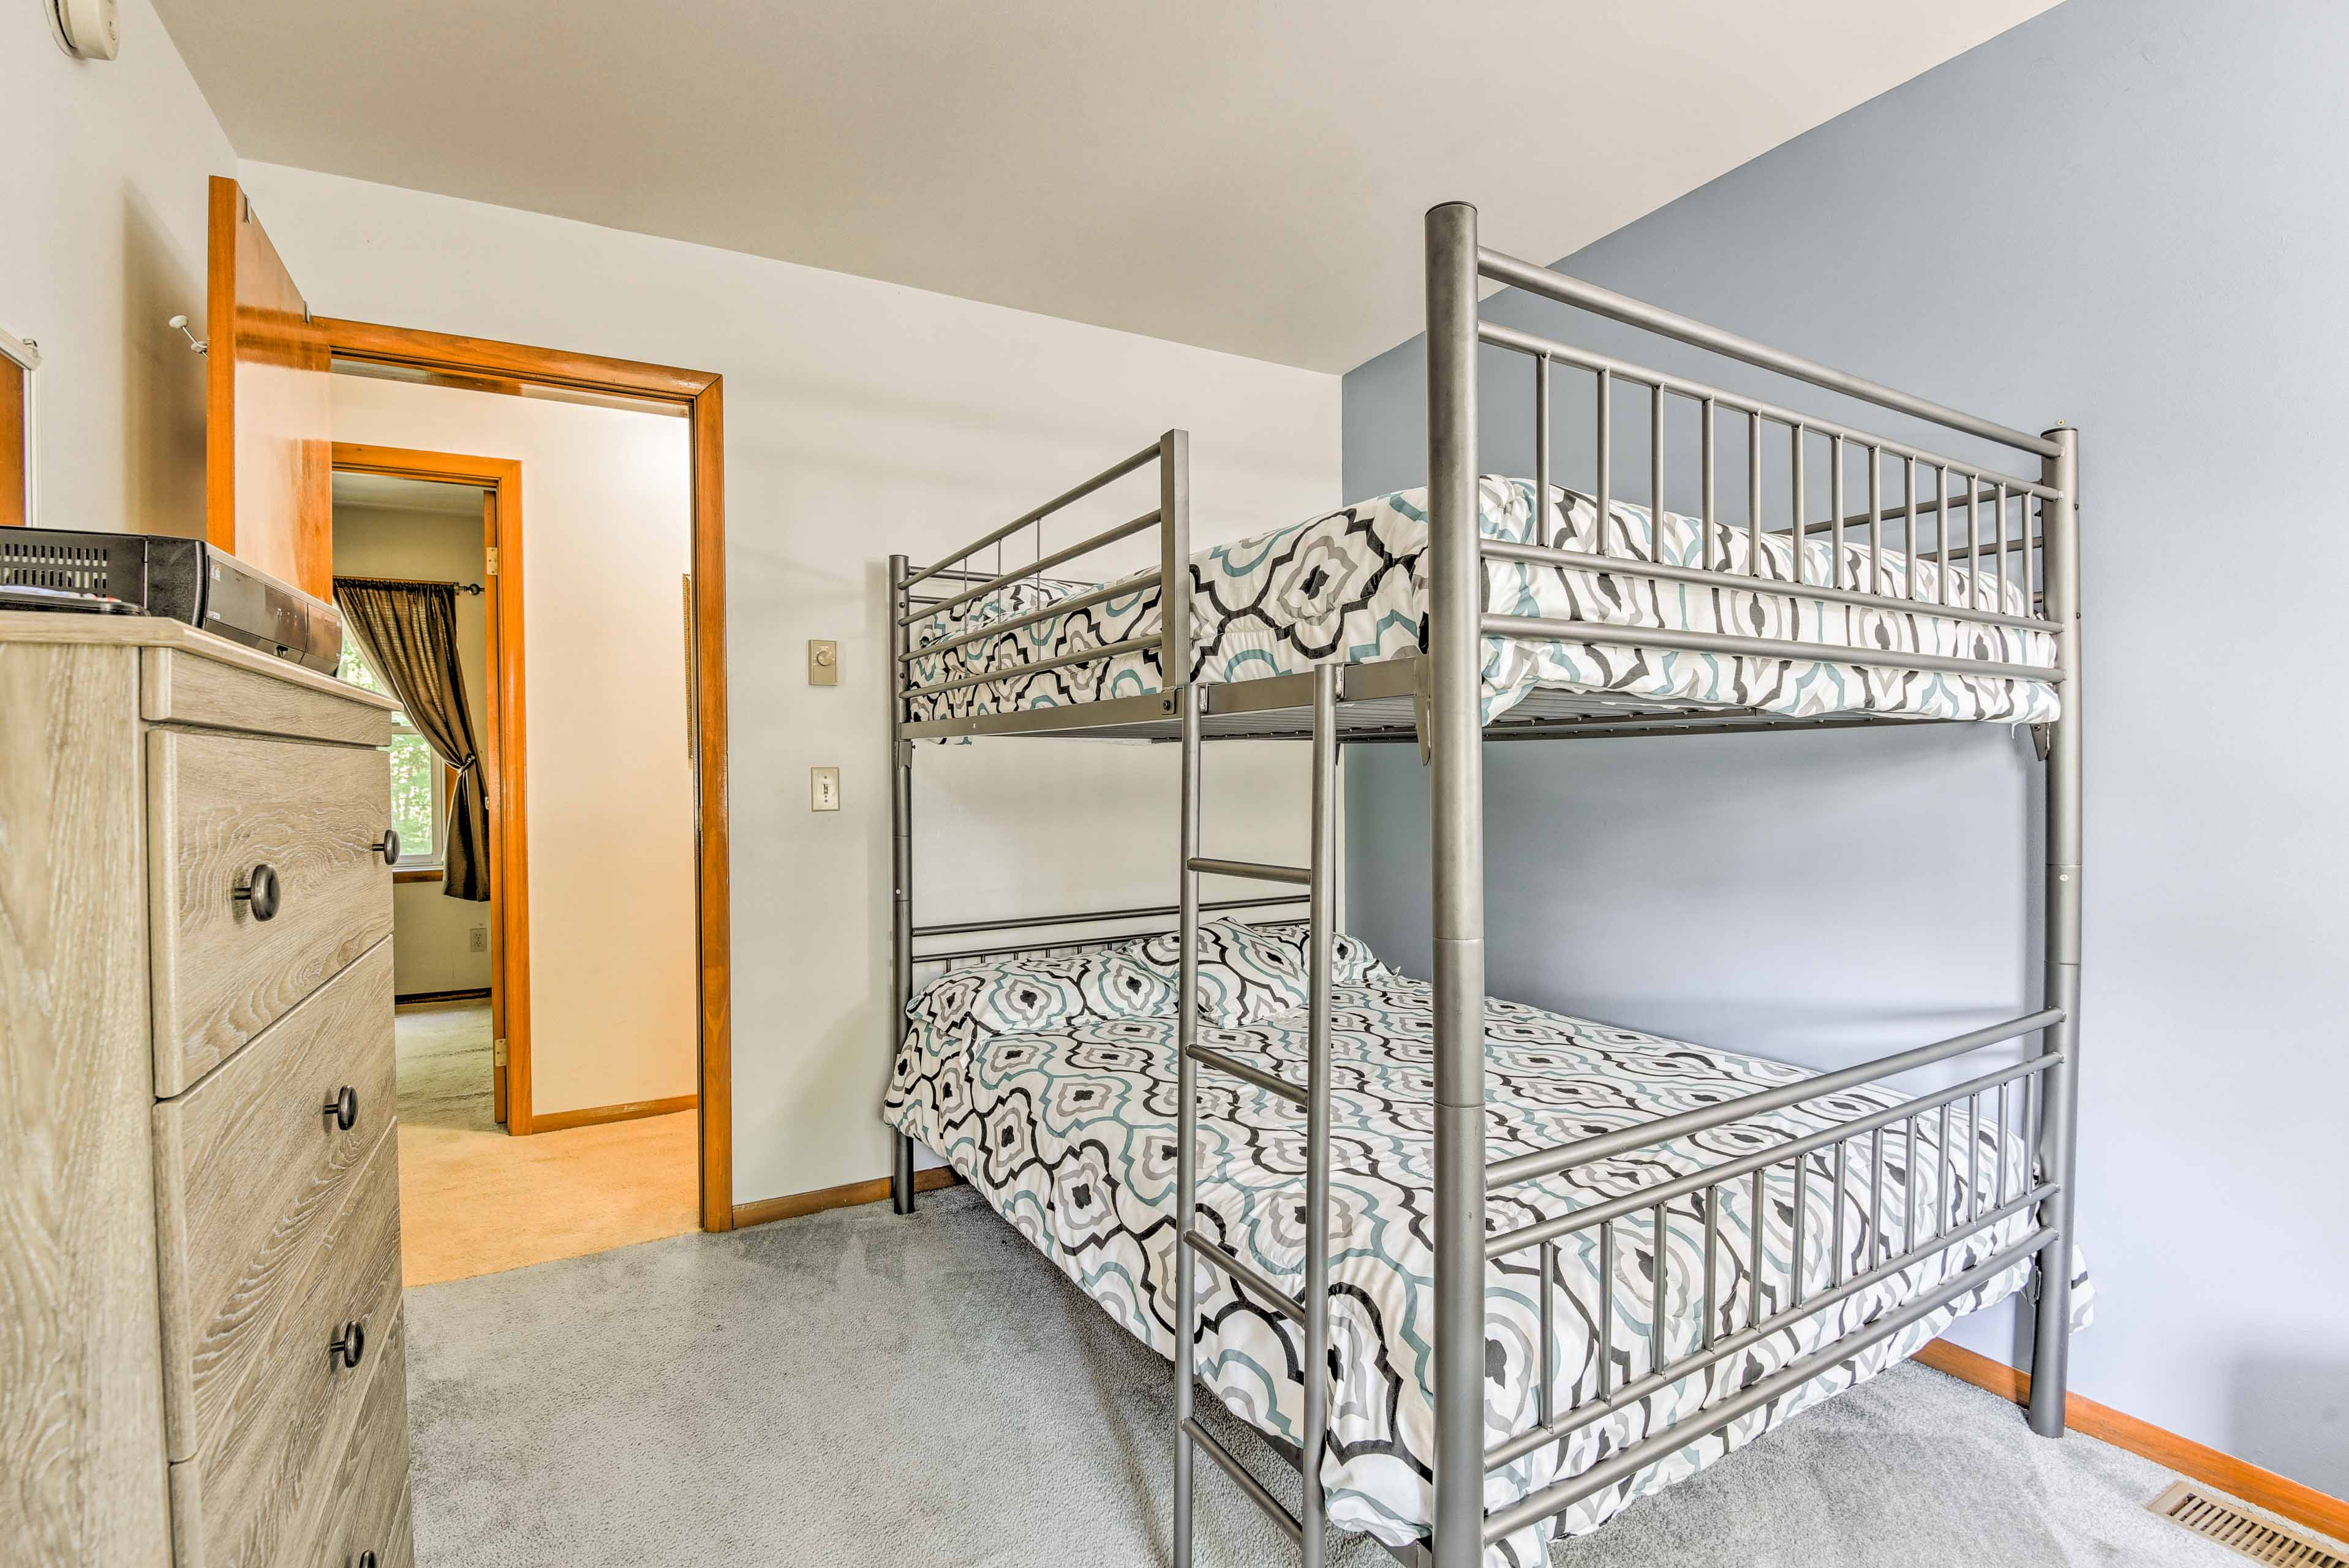 The bunk room is perfect for kids or 4 friends.